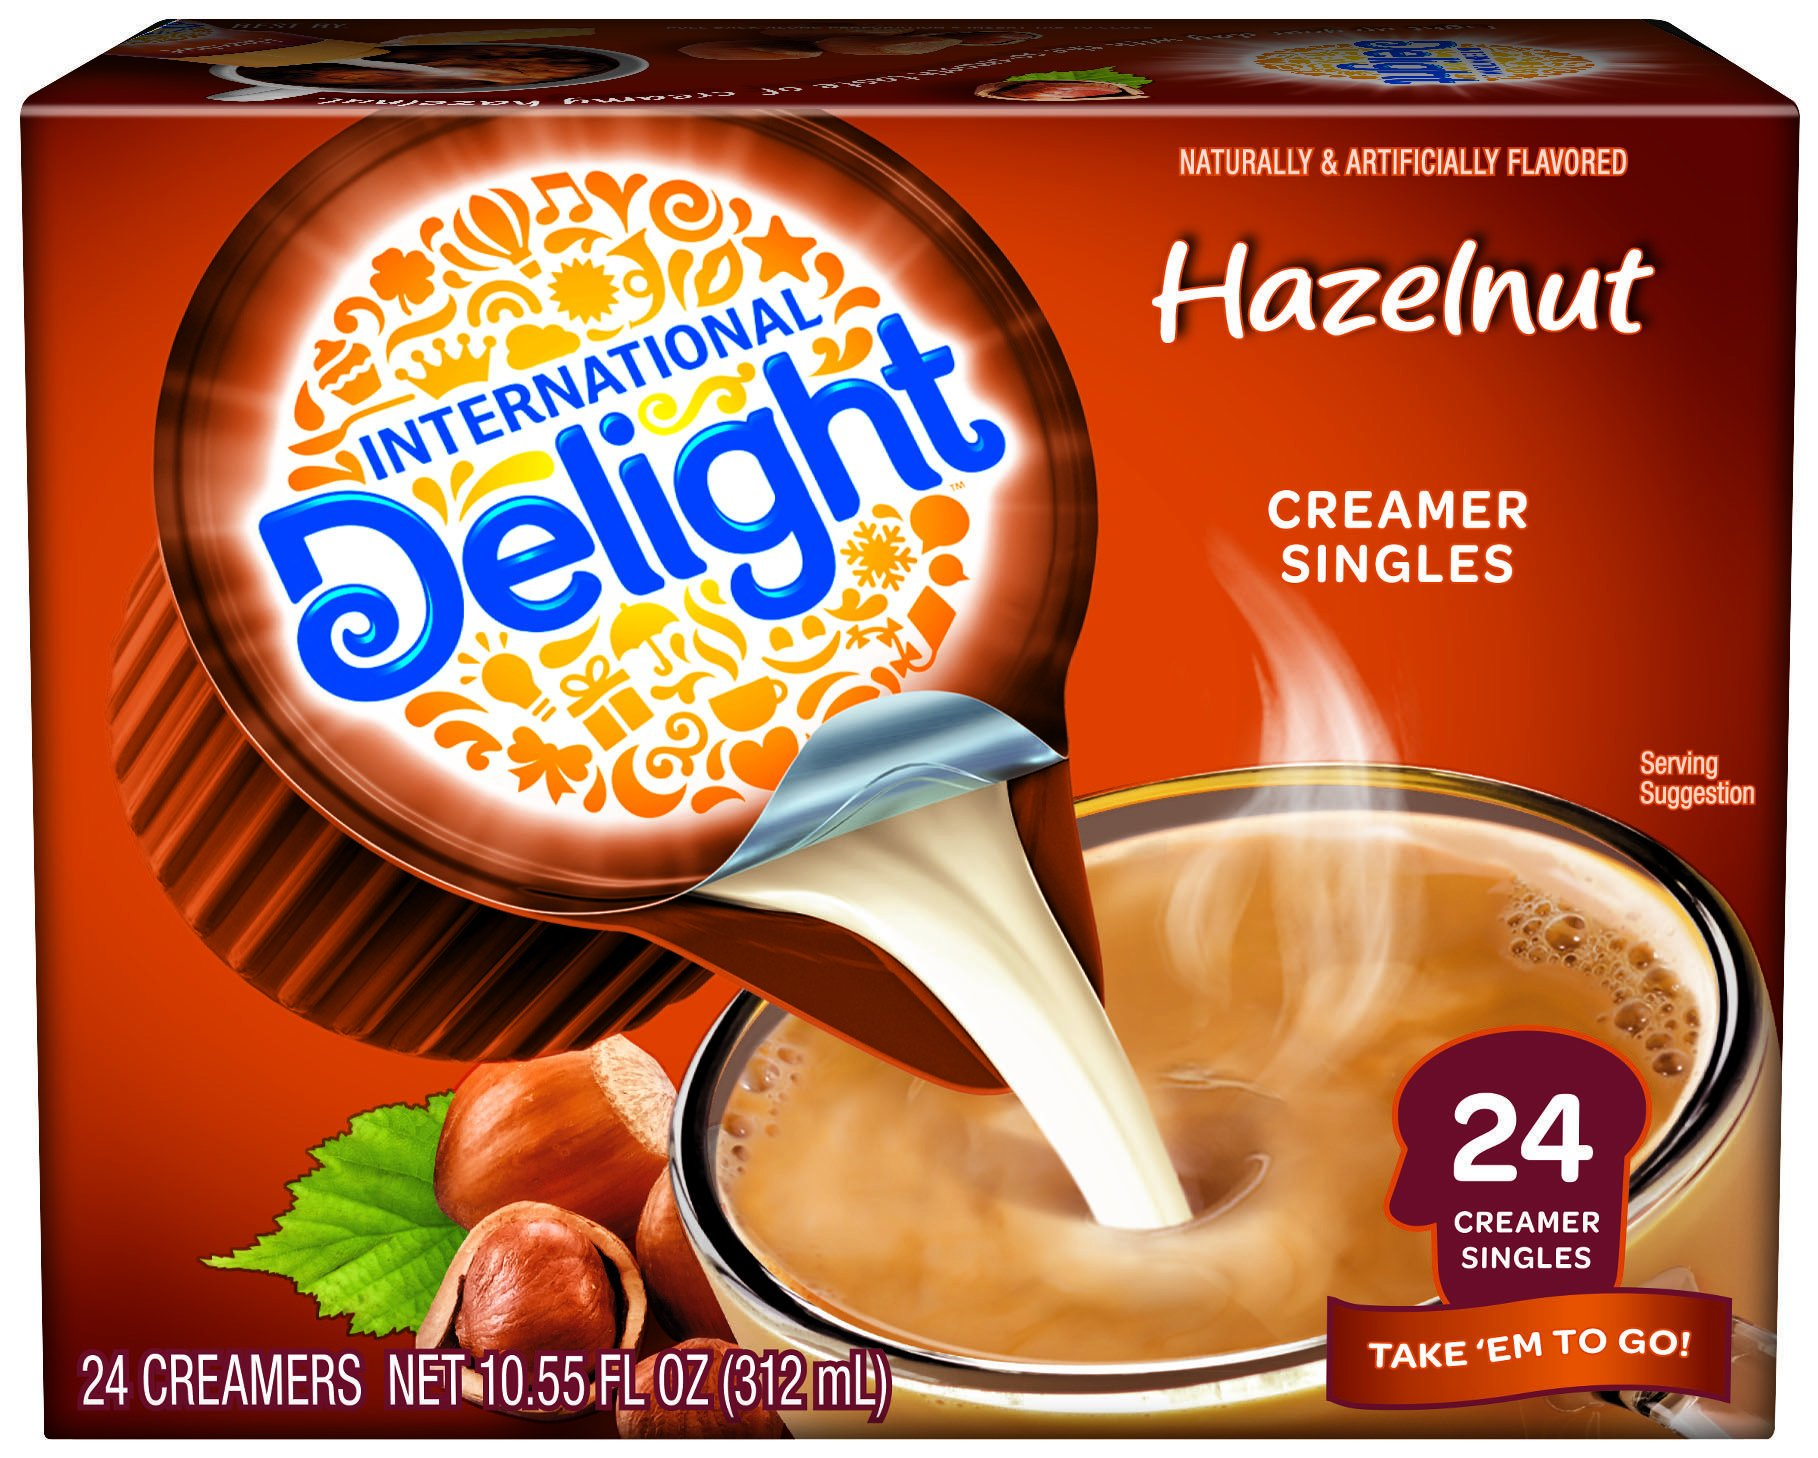 International Delight, Hazelnut, Single-Serve Coffee Creamers, 24 Count, Shelf Stable Non-Dairy Flavored Coffee Creamer, Great for Home Use, Offices, Parties or Group Events